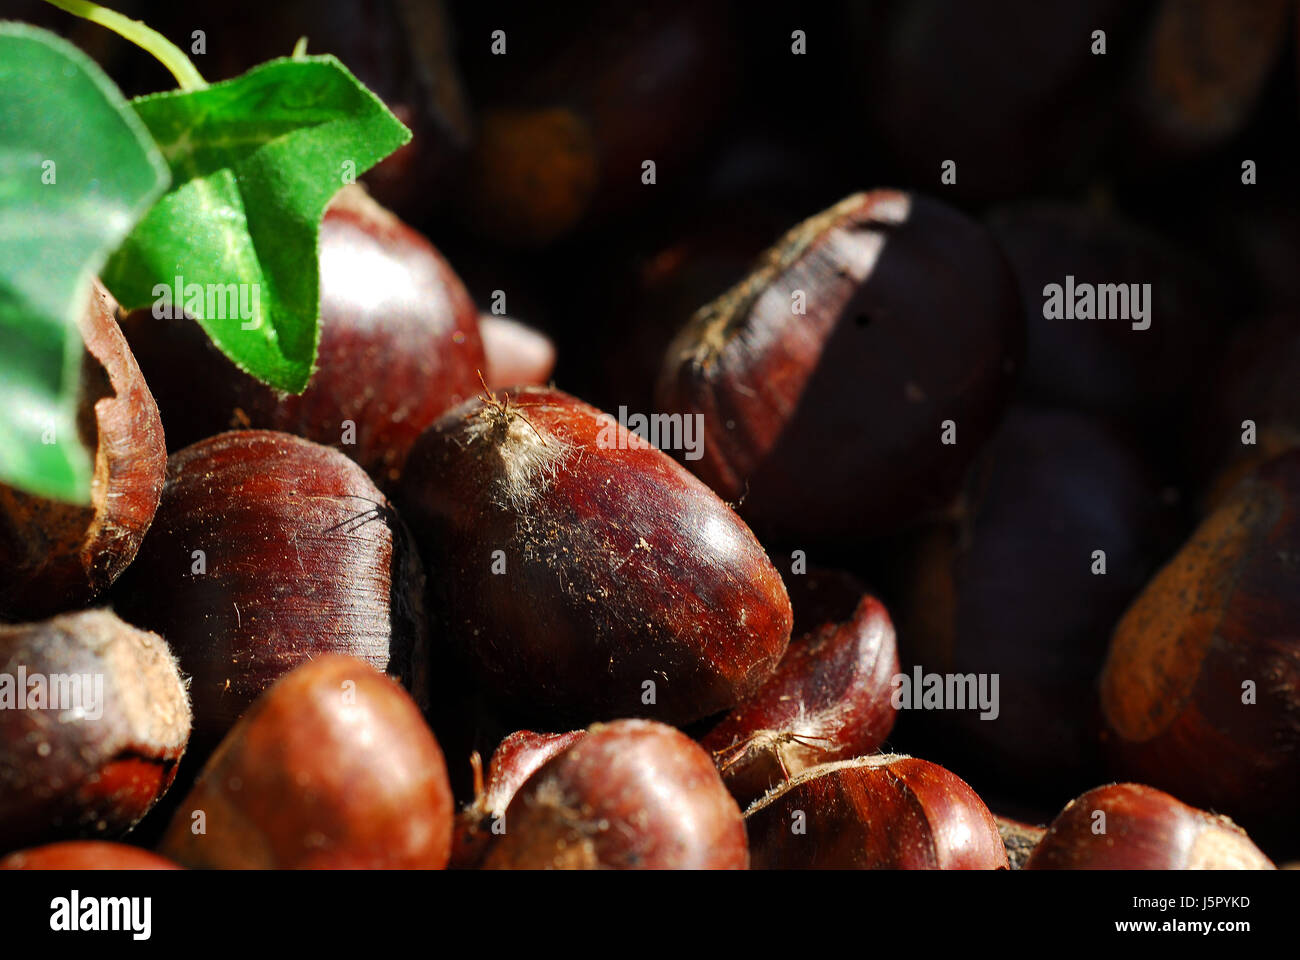 delicacy chestnut edible oxidized rust roast roasted parched esskastanie - Stock Image